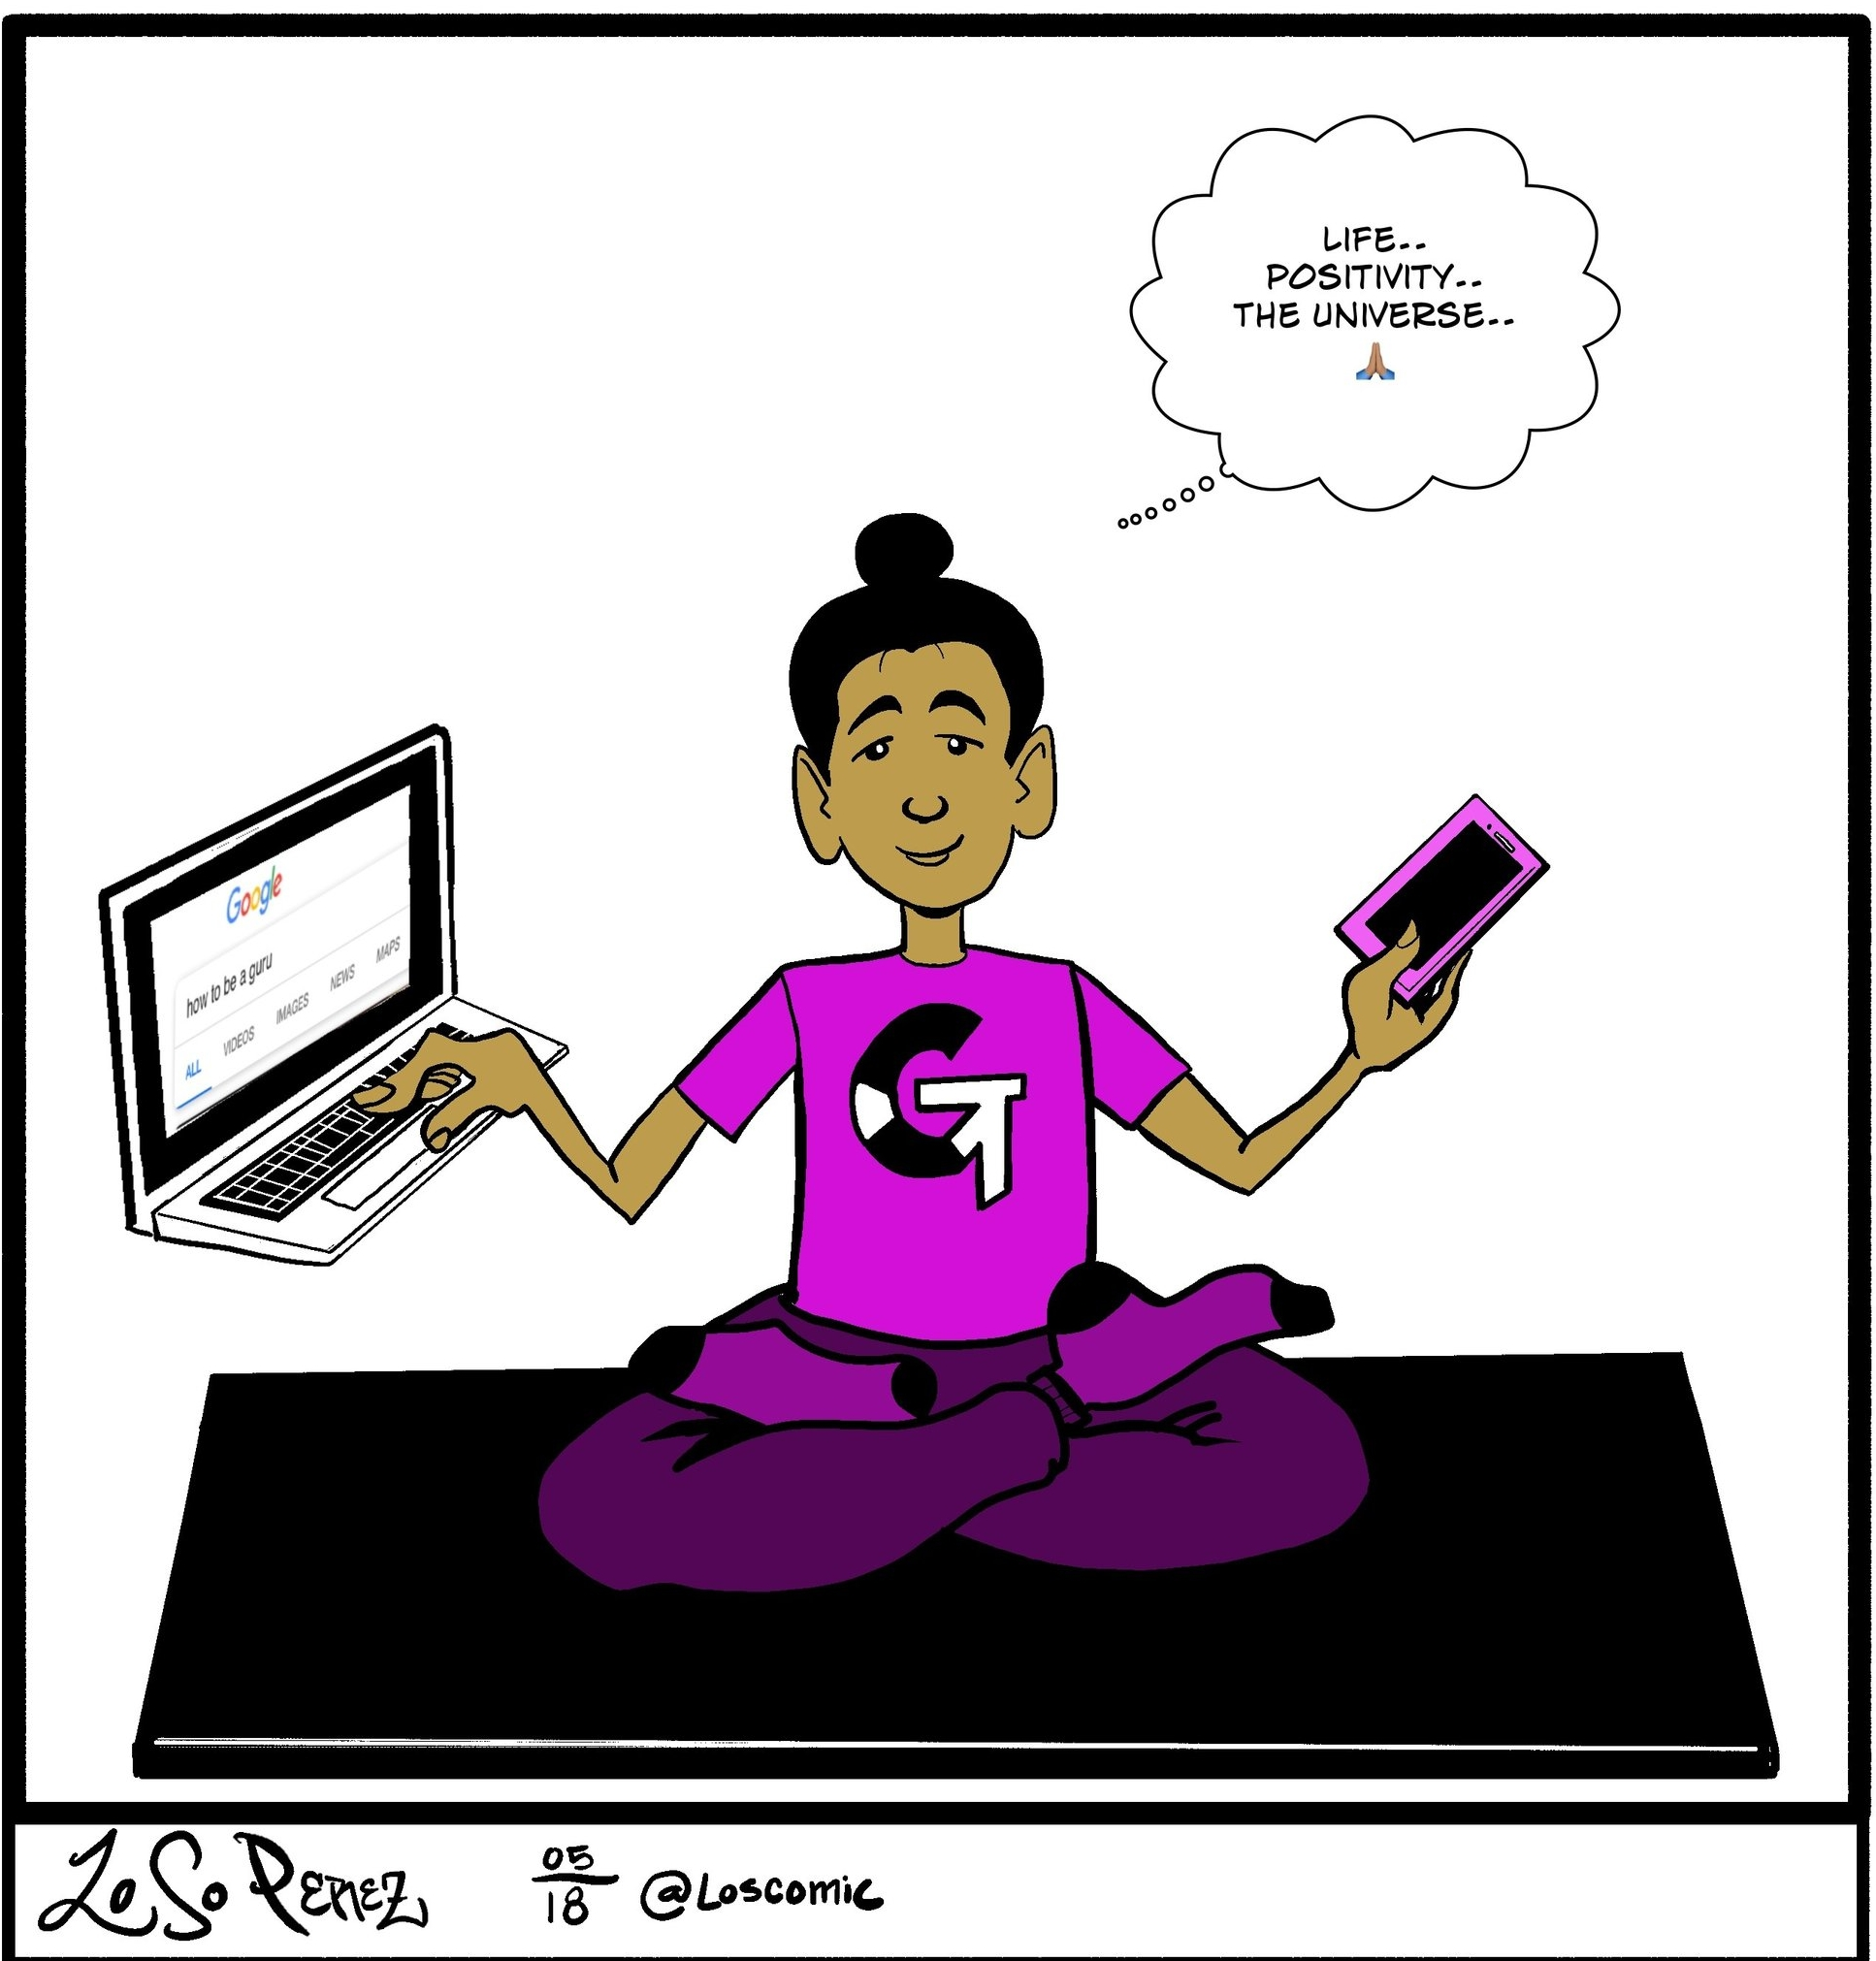 """The Google Guru"" Illustrated by  Loso F. Perez"